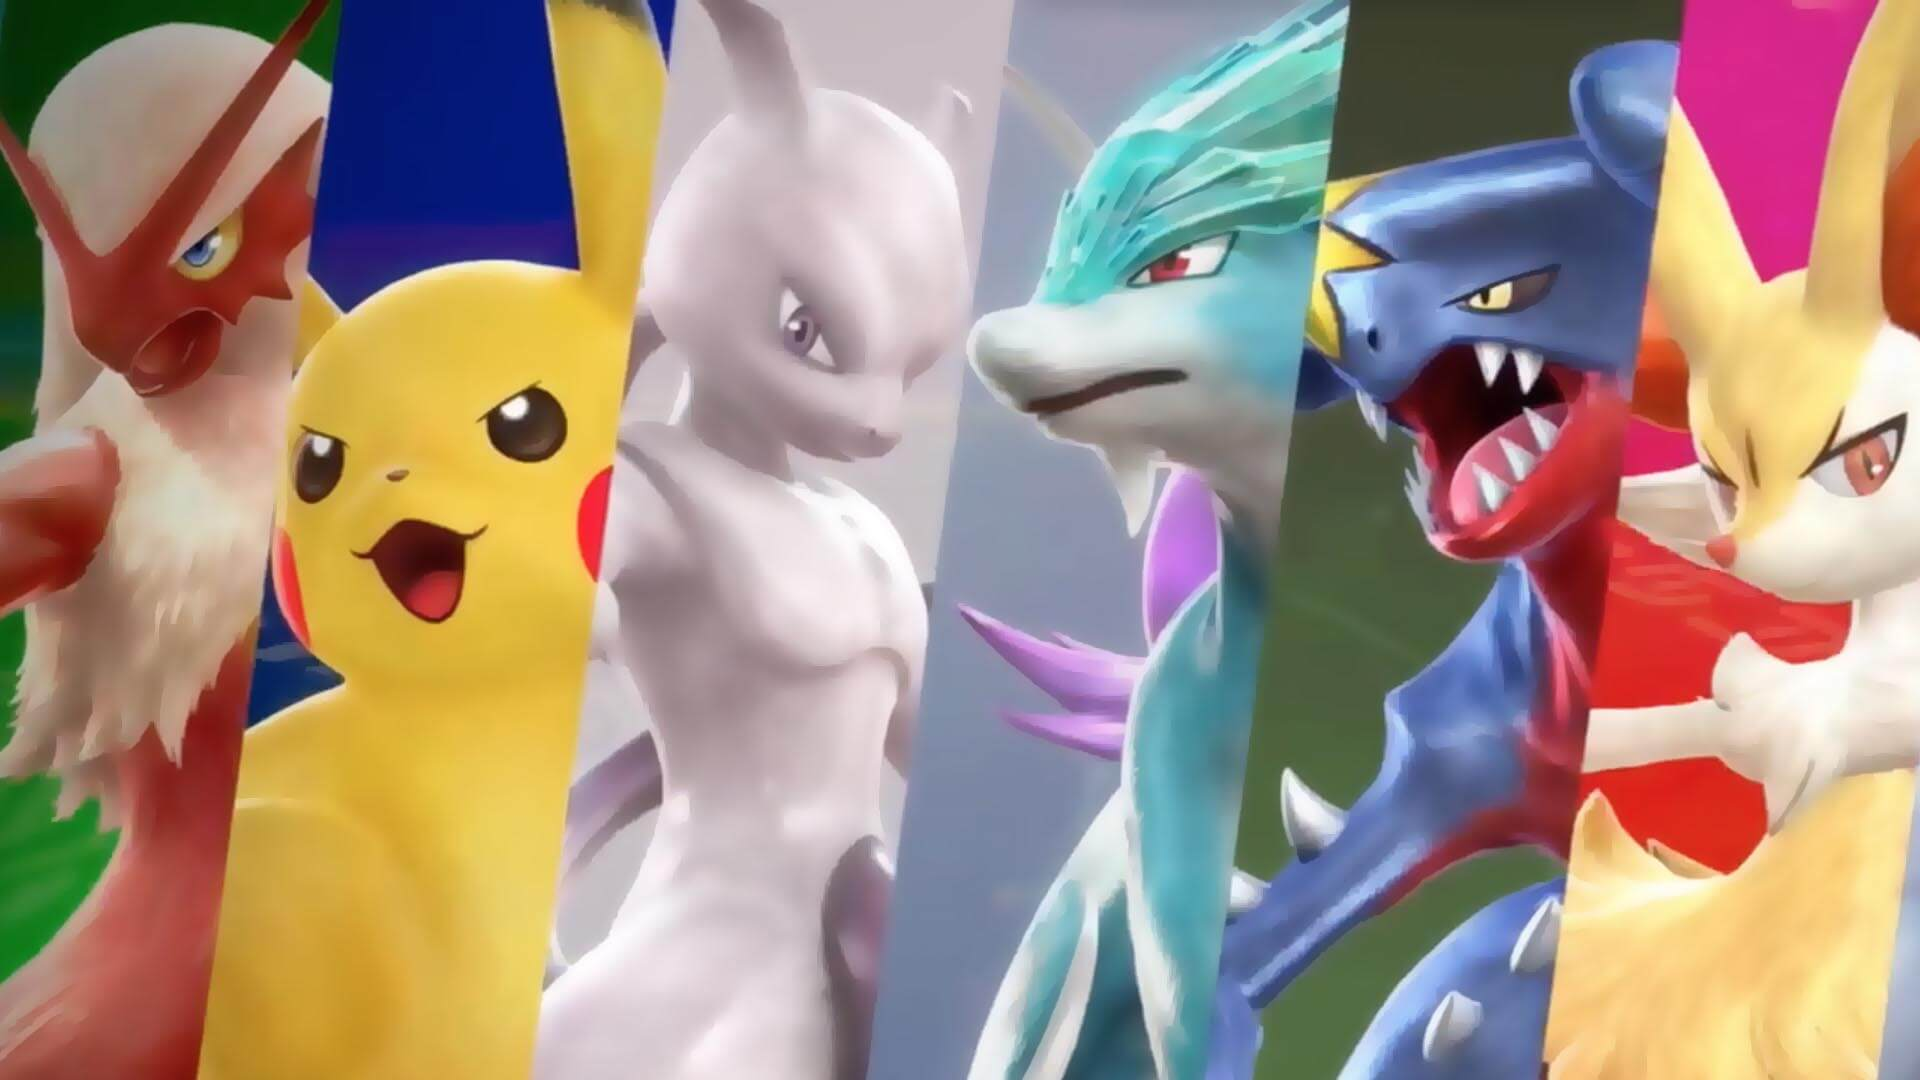 Tekken's producer urged to continue the Pokémon fighting franchise